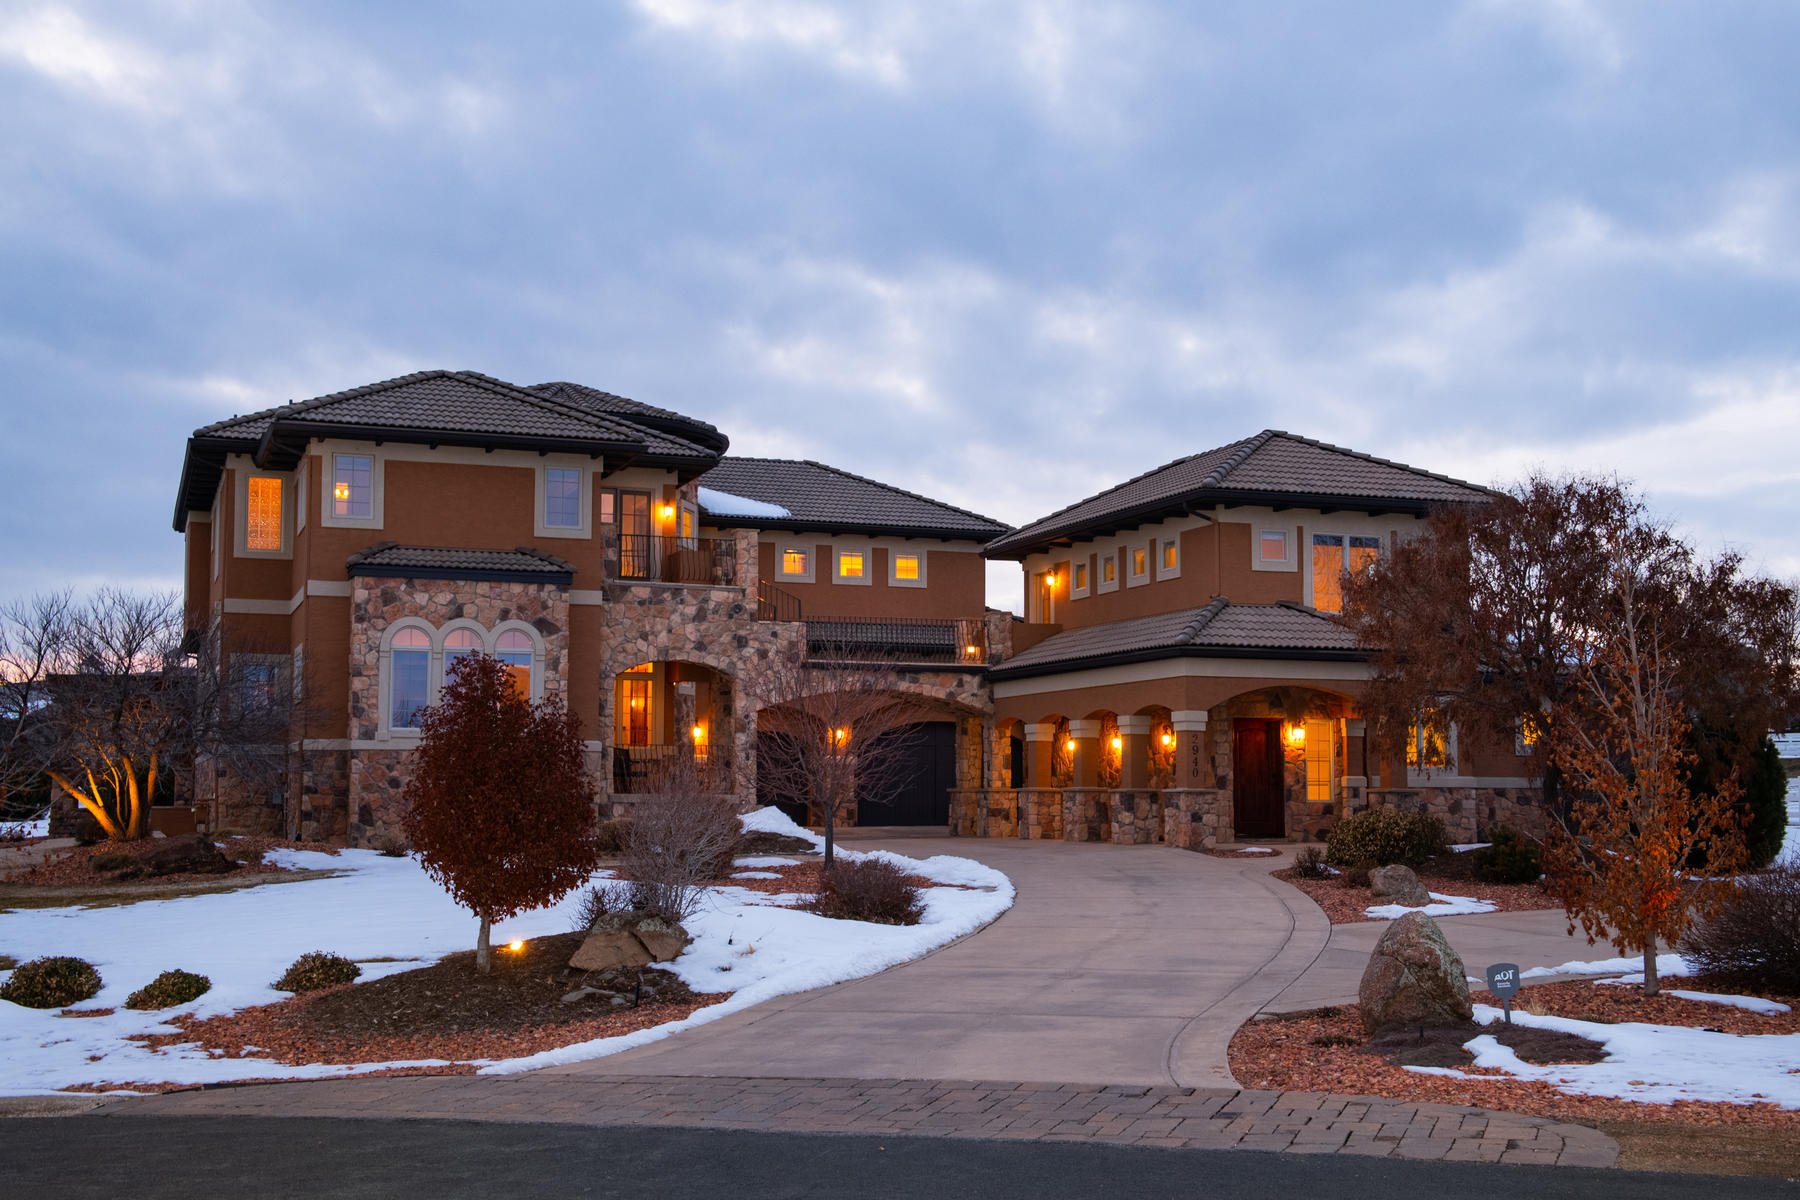 Single Family Homes for Sale at Custom Tuscan Villa 2940 High Prairie Way Broomfield, Colorado 80023 United States